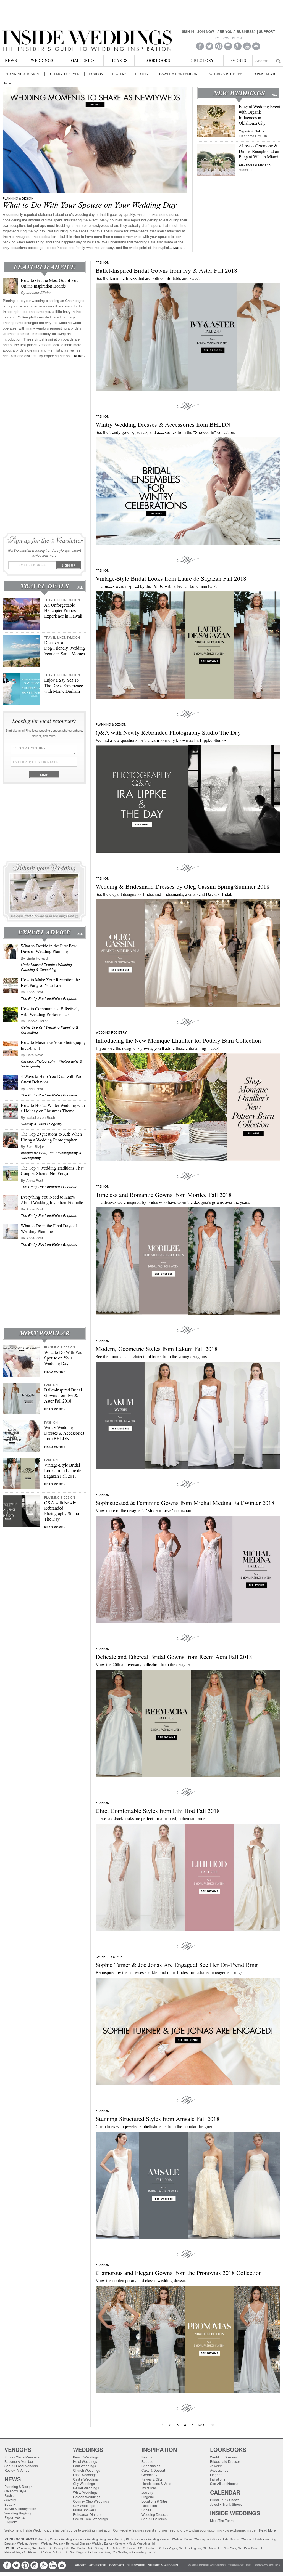 Inside Weddings Competitors, Revenue and Employees - Owler